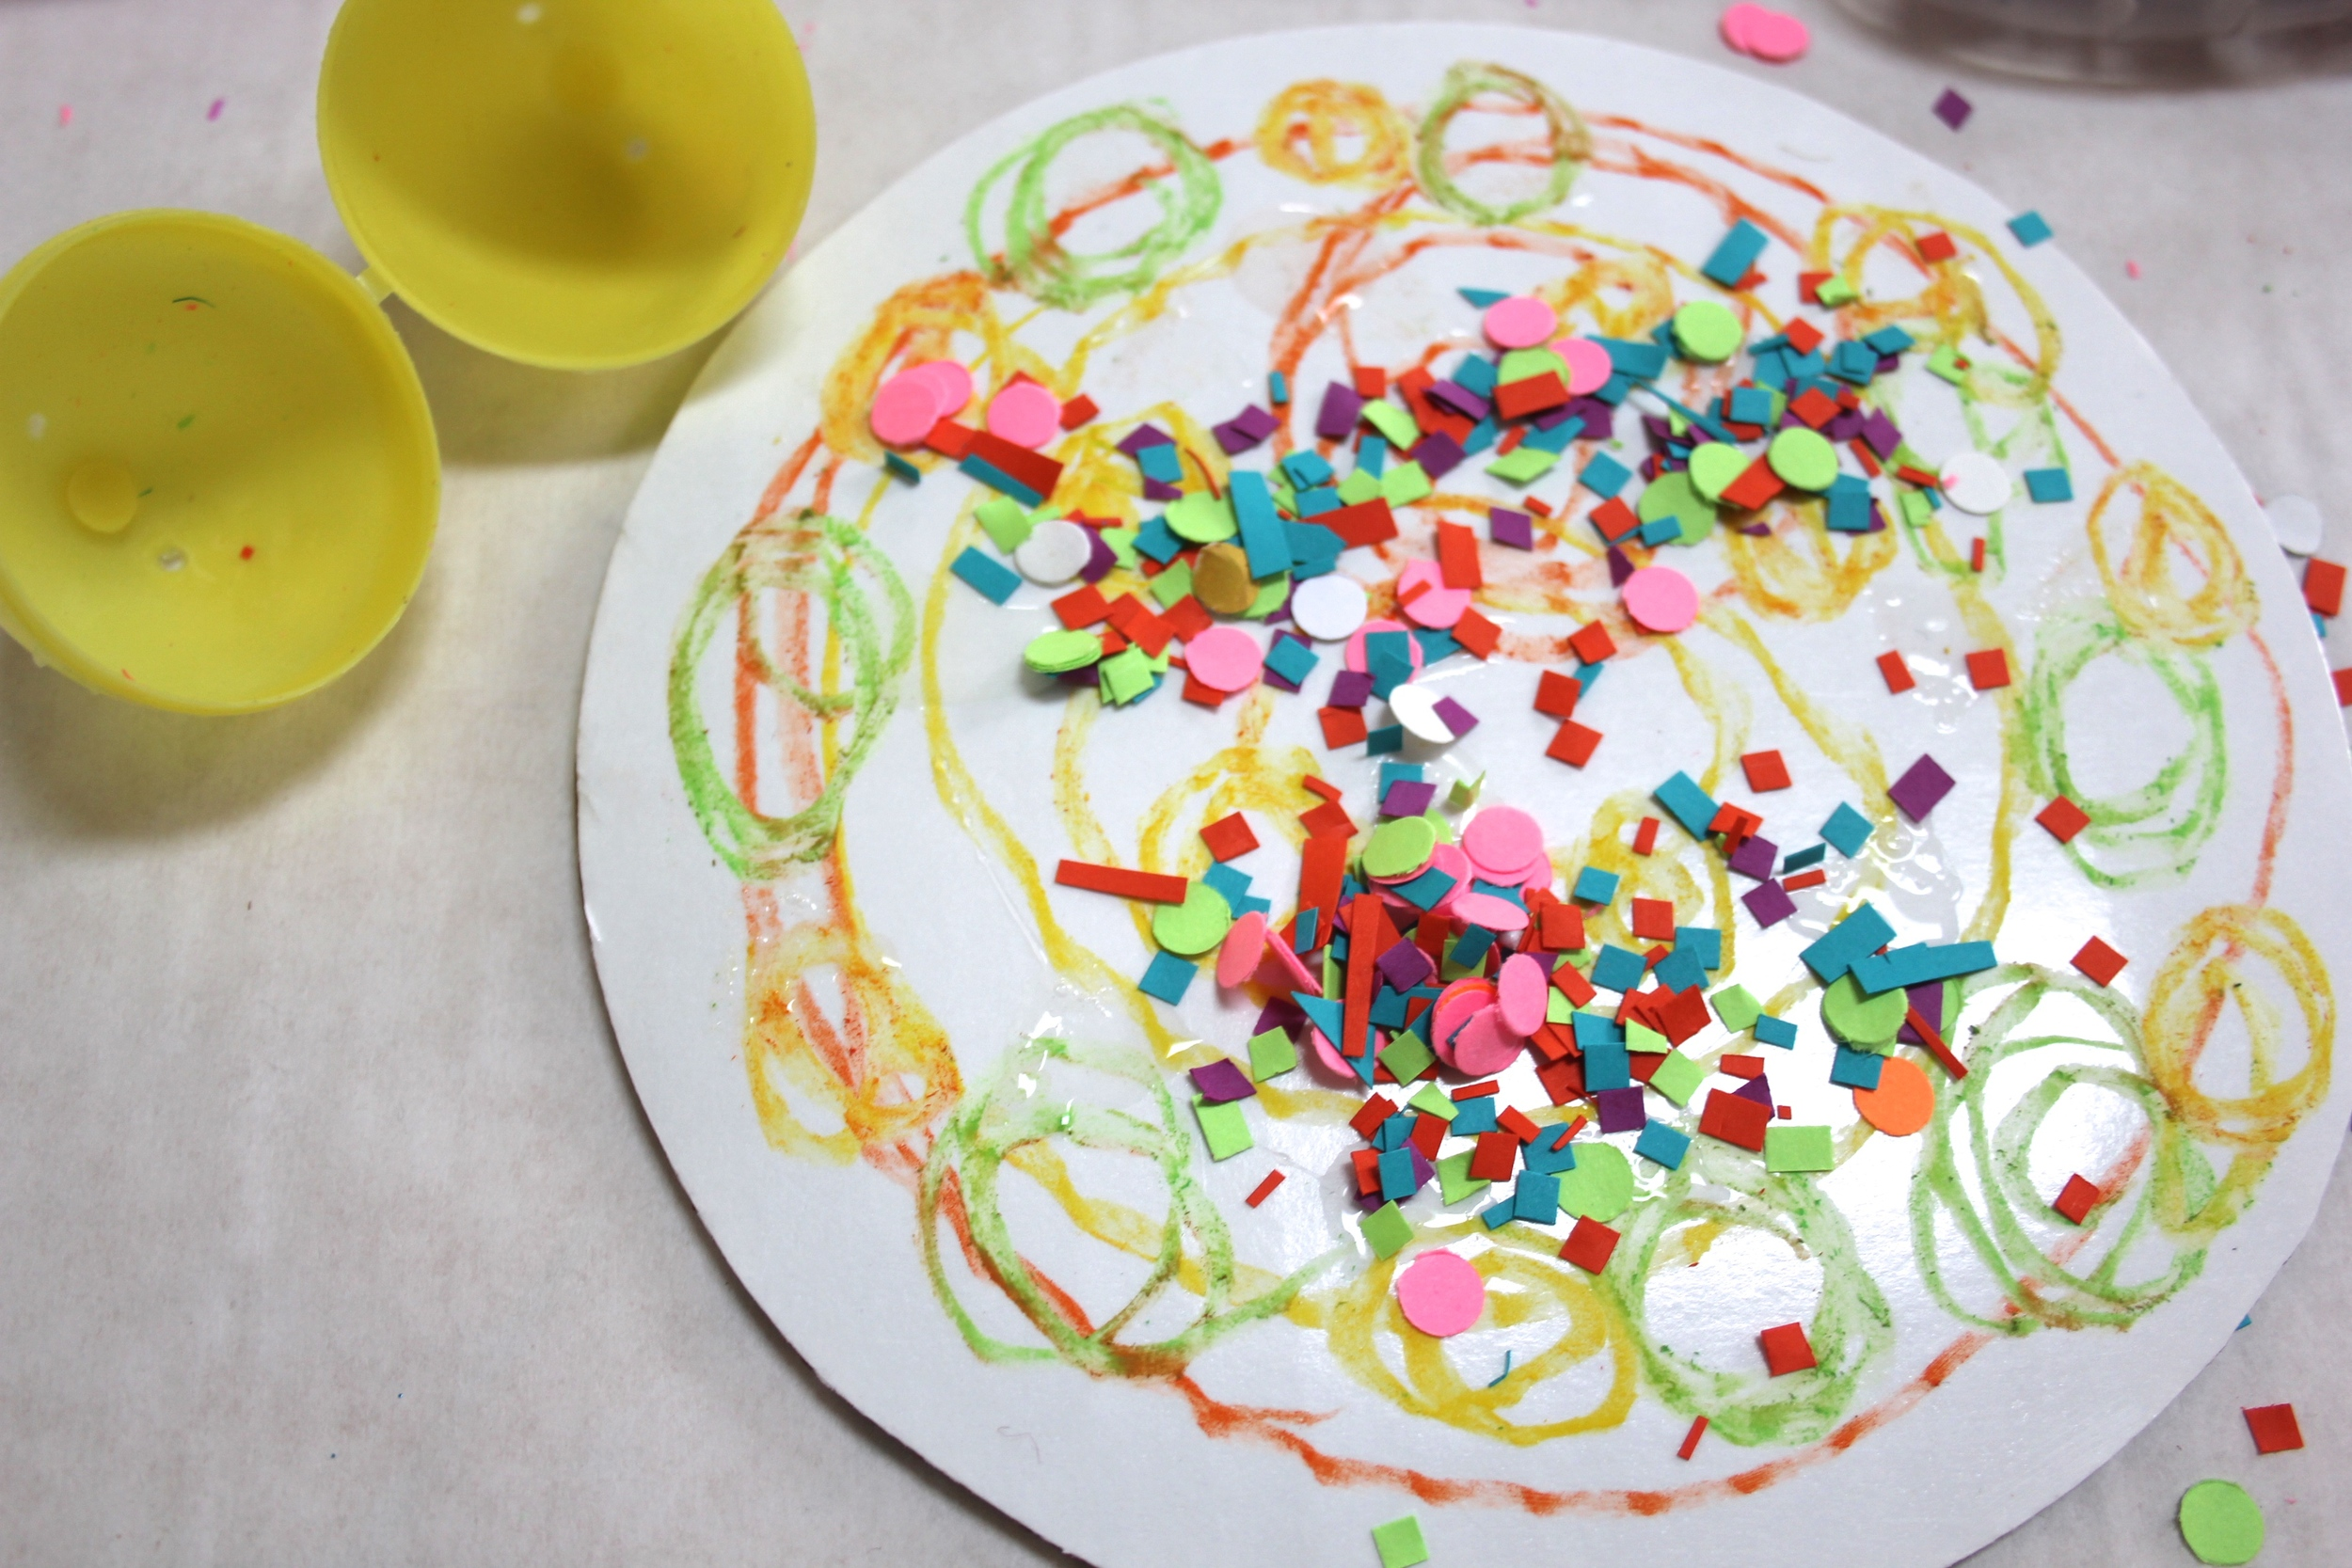 Think about where you want your confetti to land and dribble some glue to those areas. Crack open your confetti filled egg and wait for the colorful 'egg-plosion'. Super fun surprise for little ones.